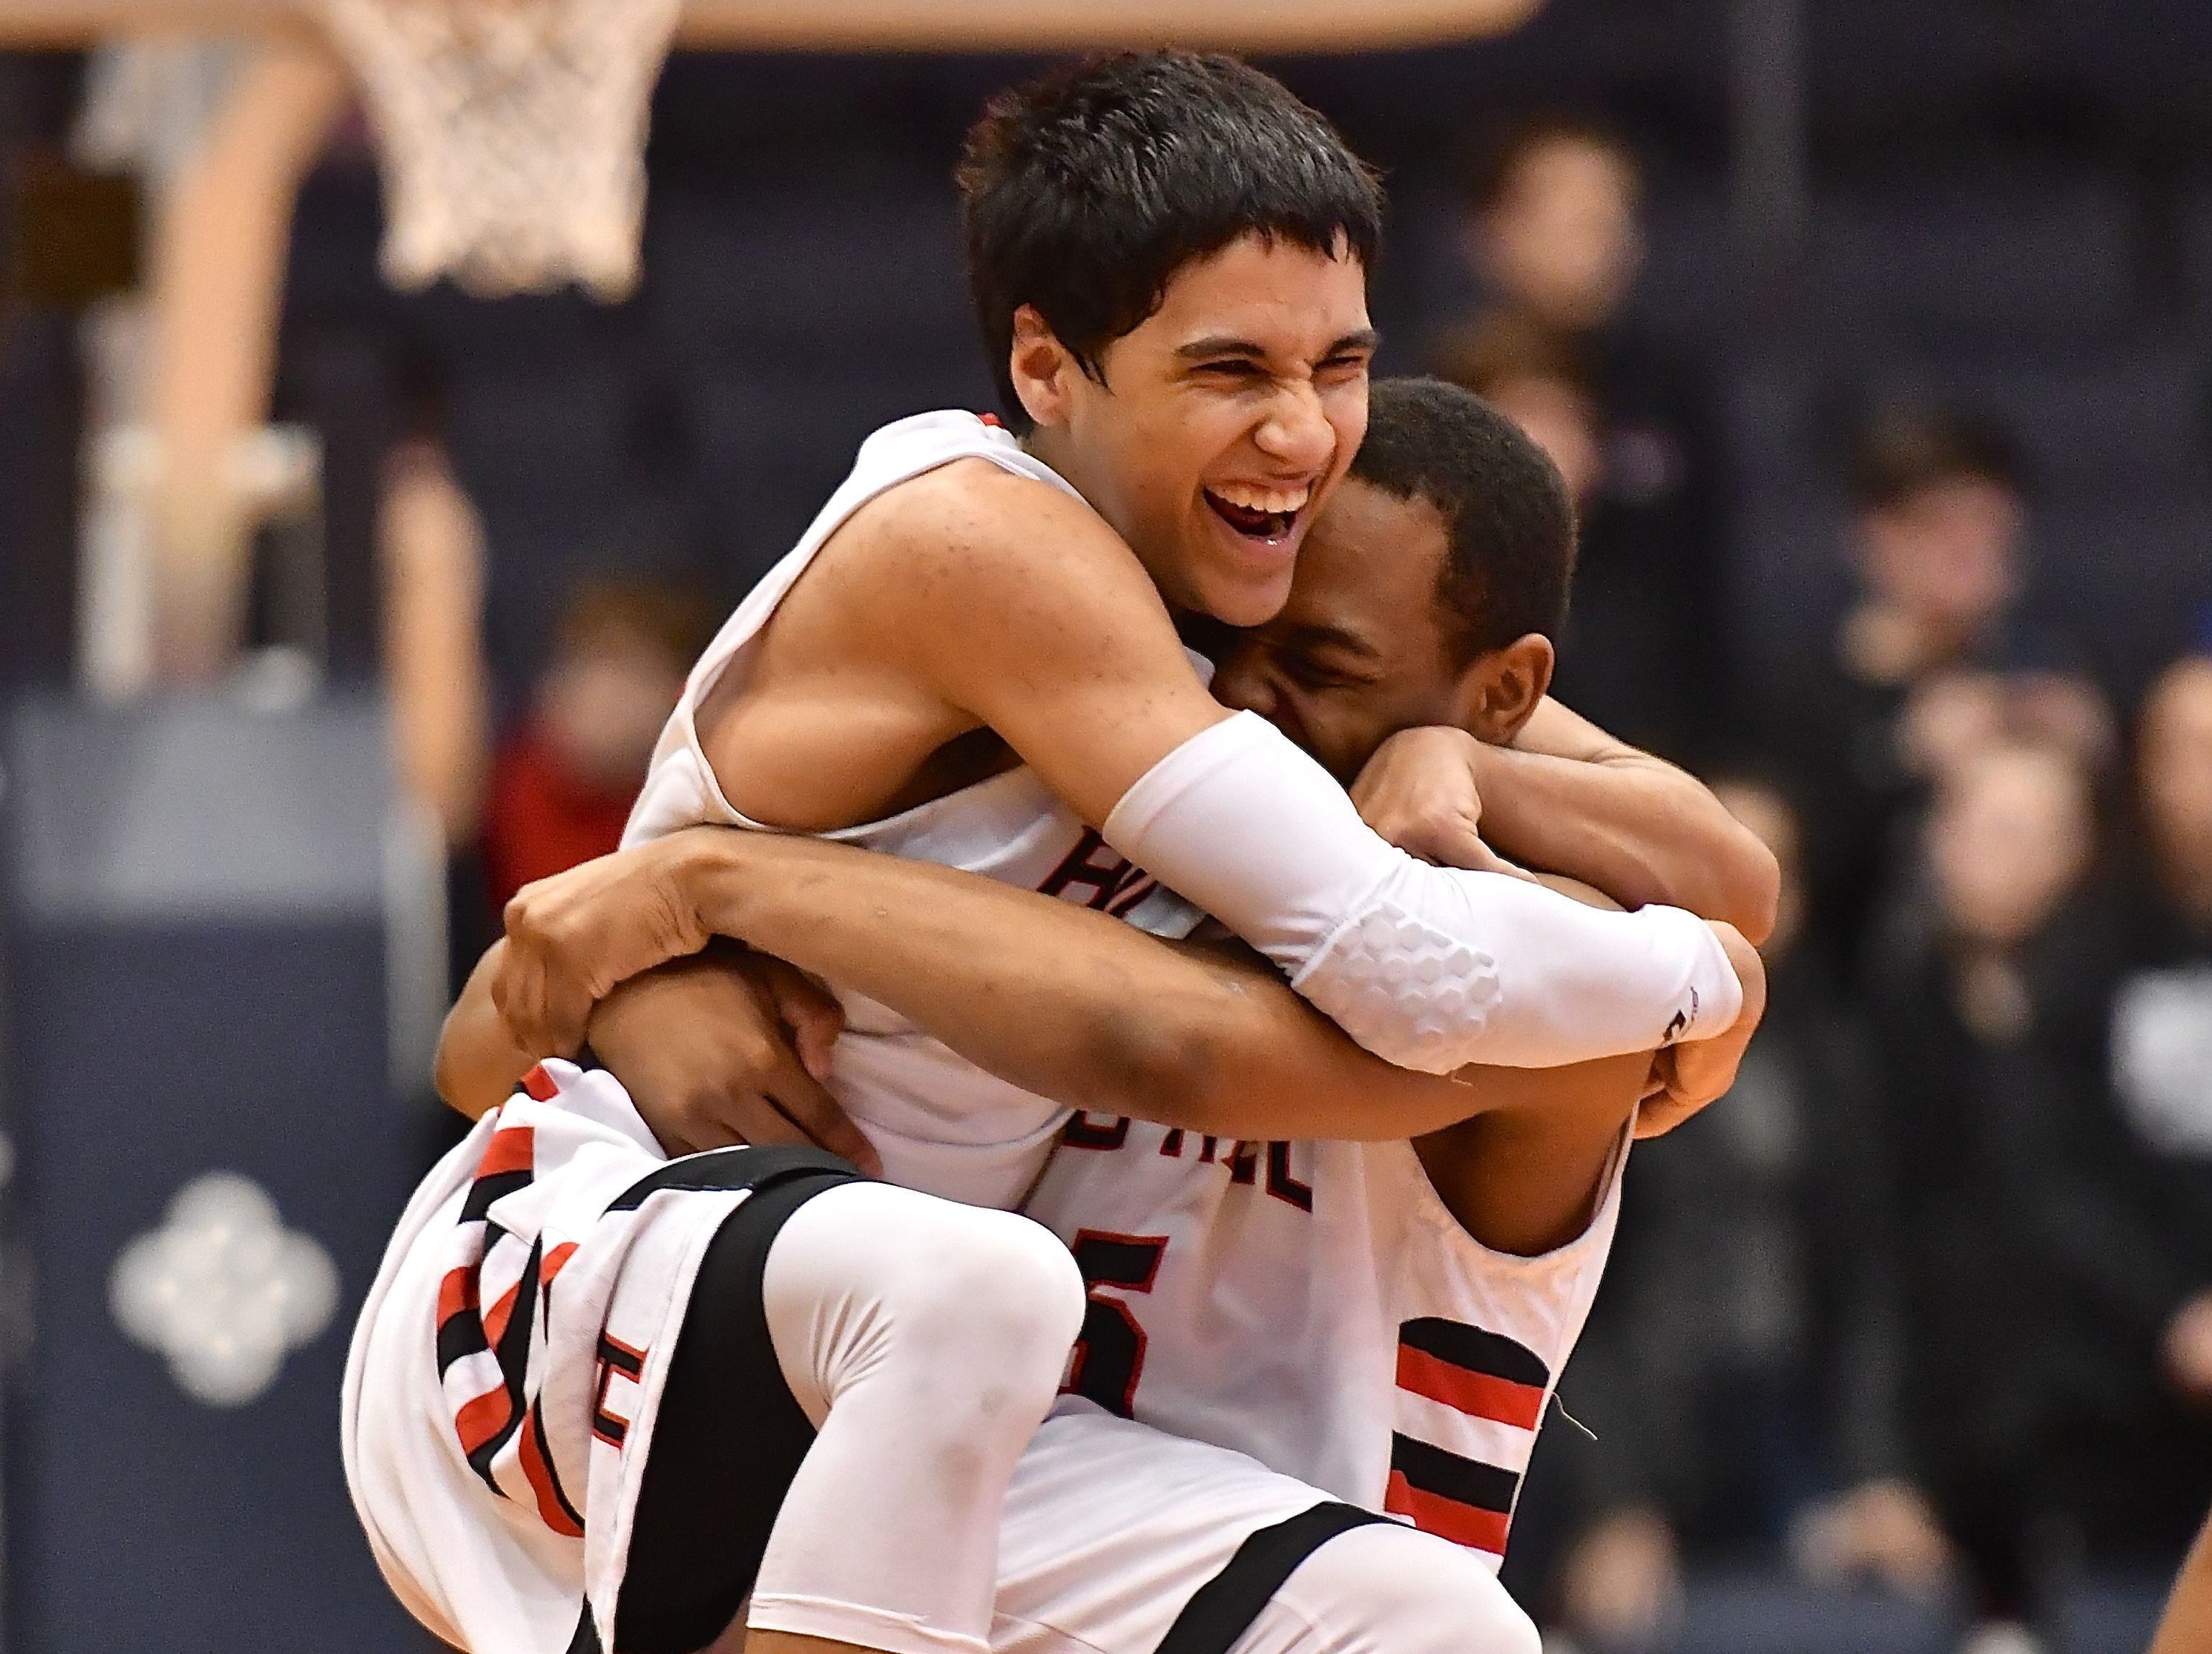 Hughes' Giovanni Santiago leaps into the arms of AJ Smith as the final buzzer sounds Thursday, March 8 at the University of Dayton.